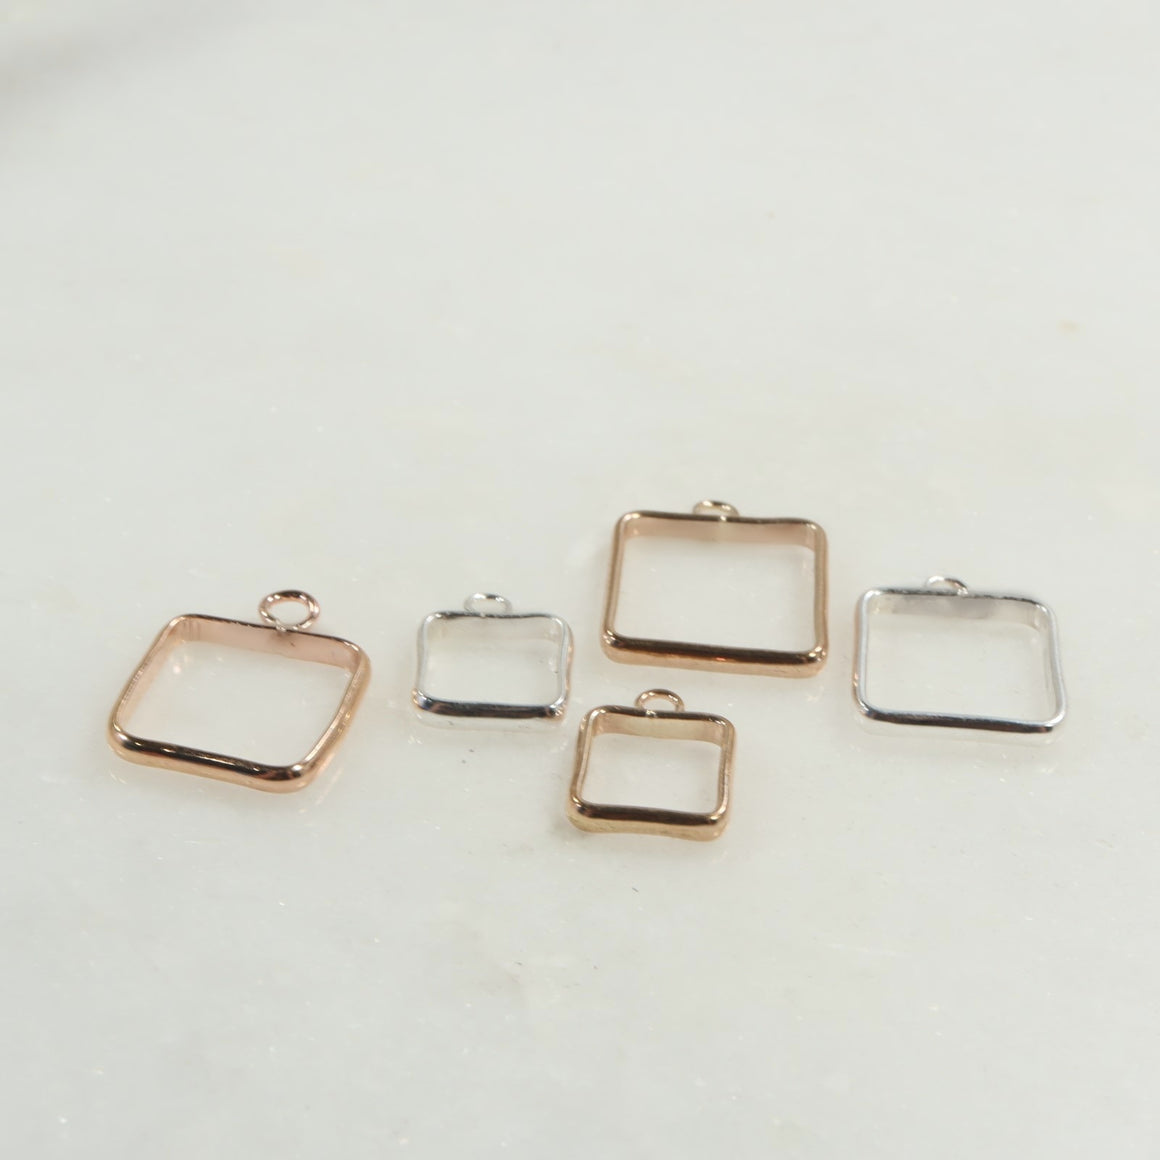 square open bezels in silver, gold, pink gold